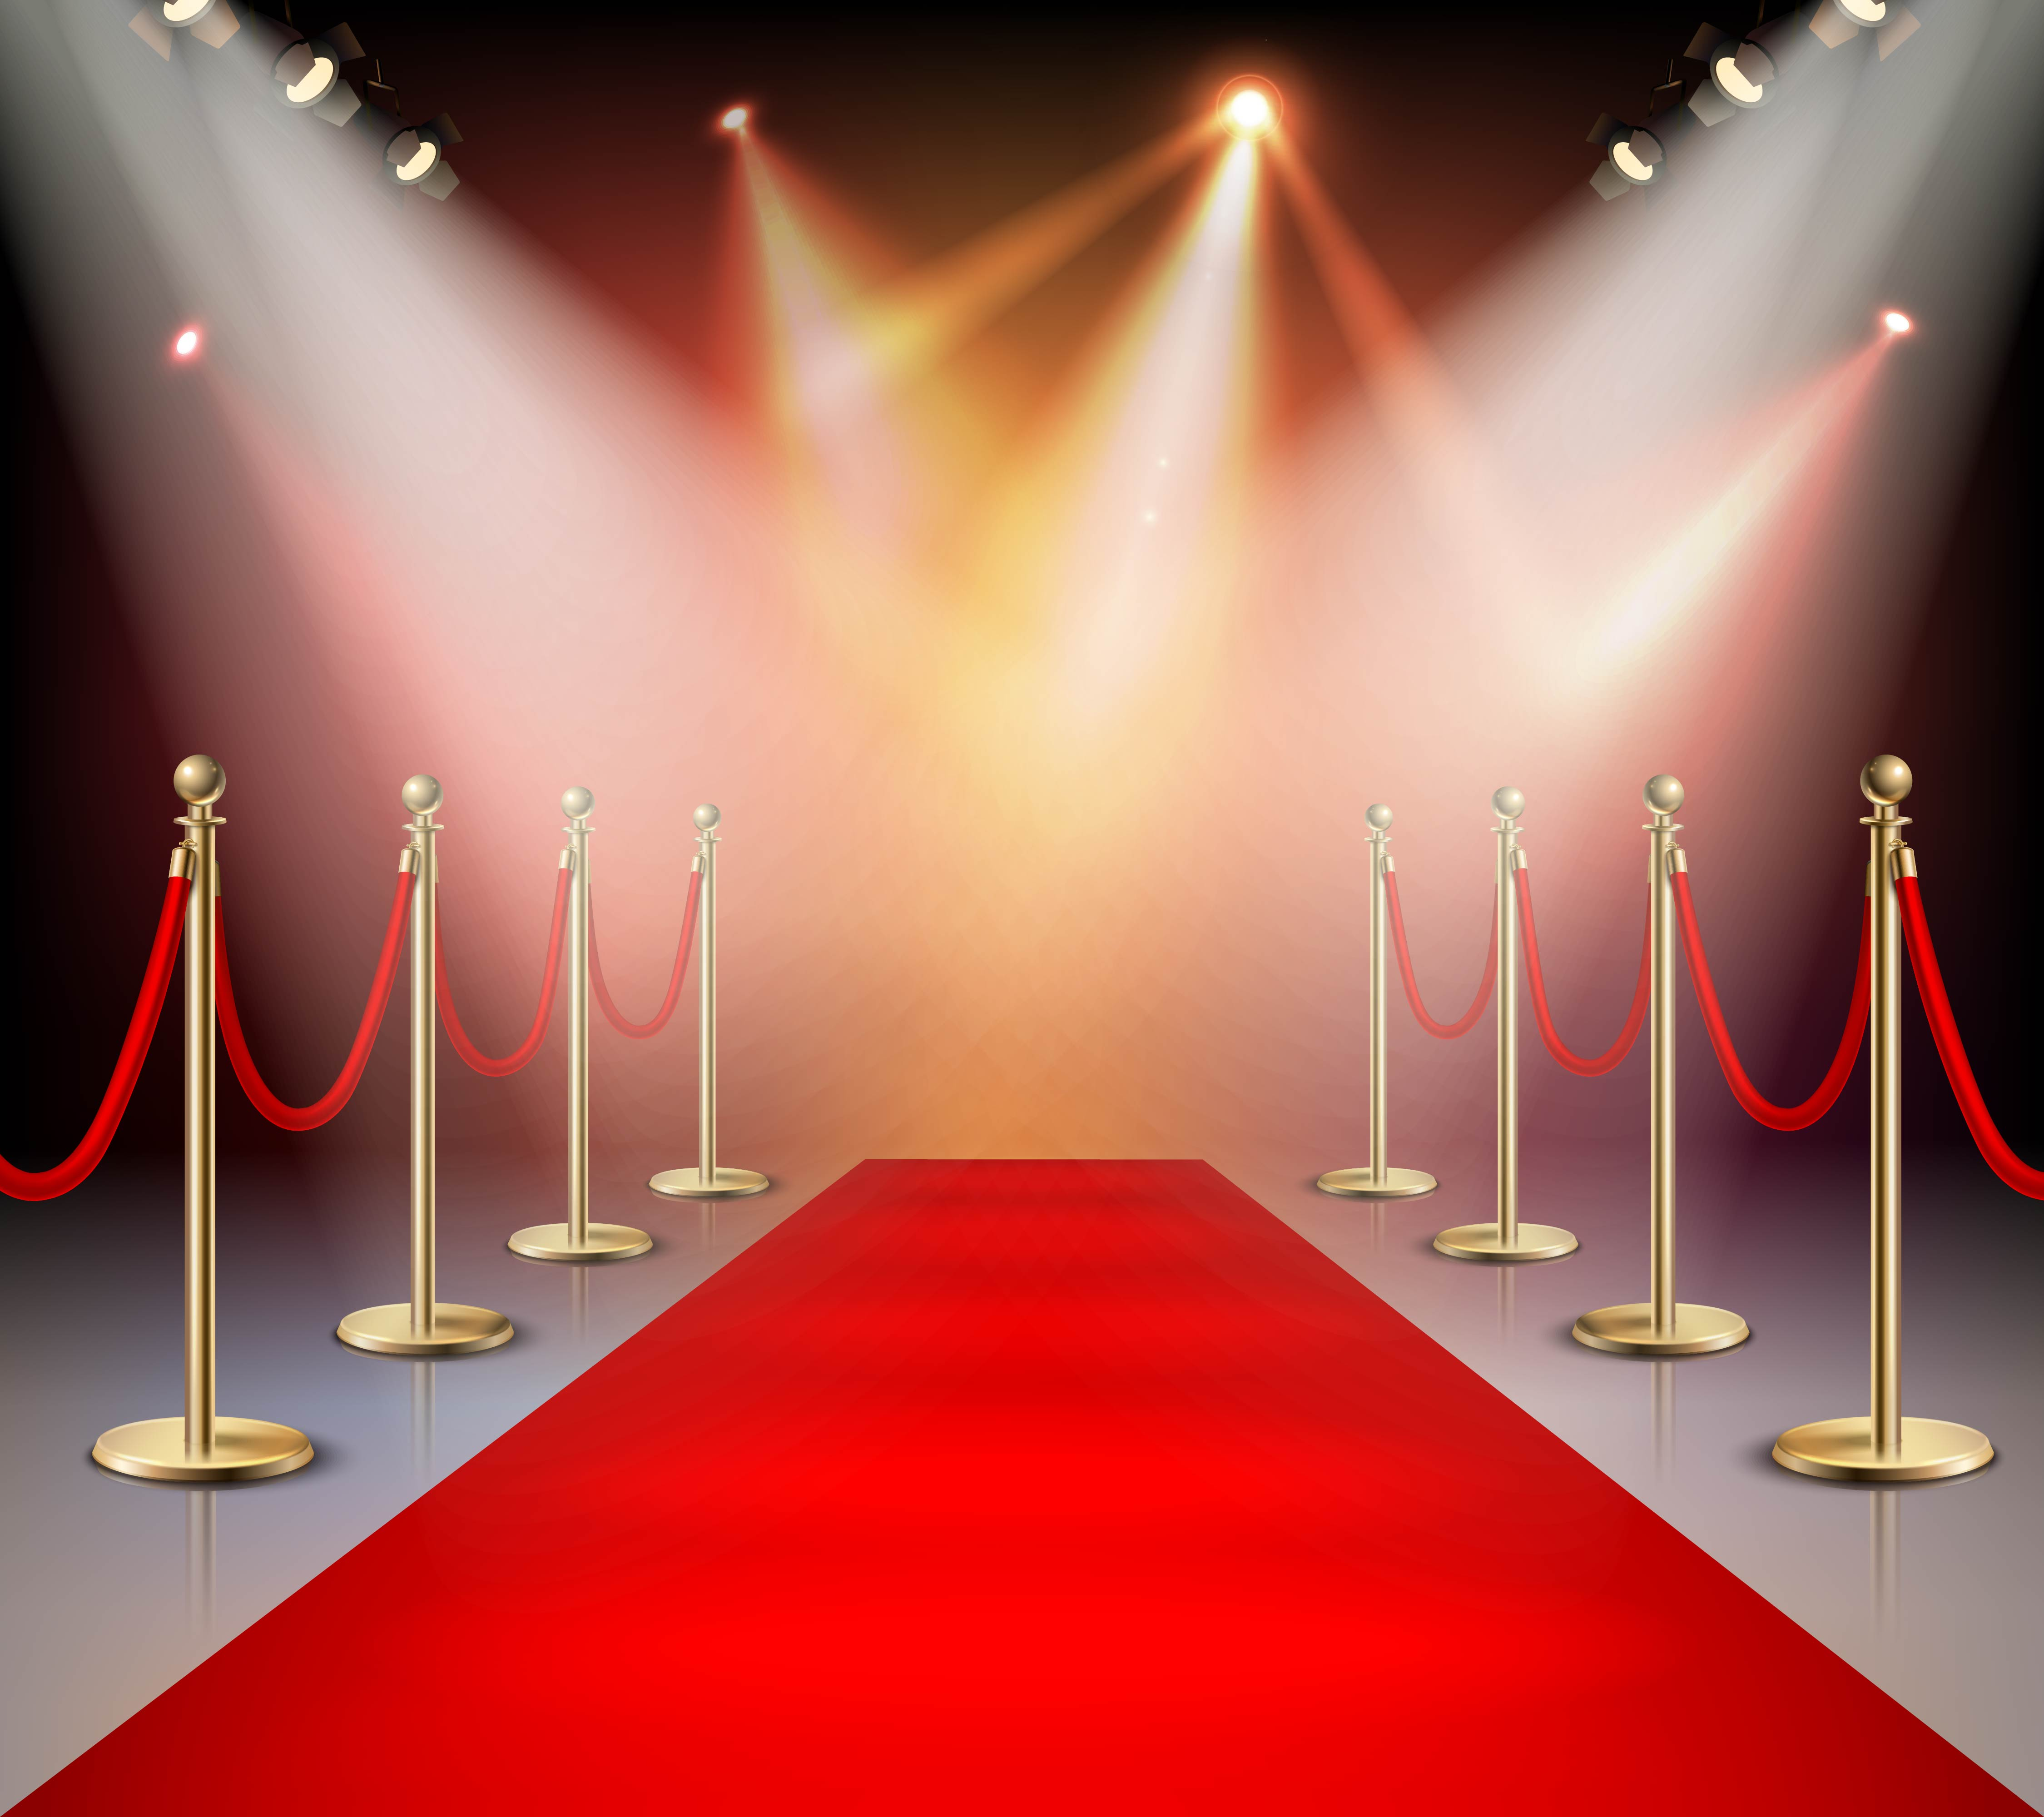 Red Carpet In Illumination Composition Download Free